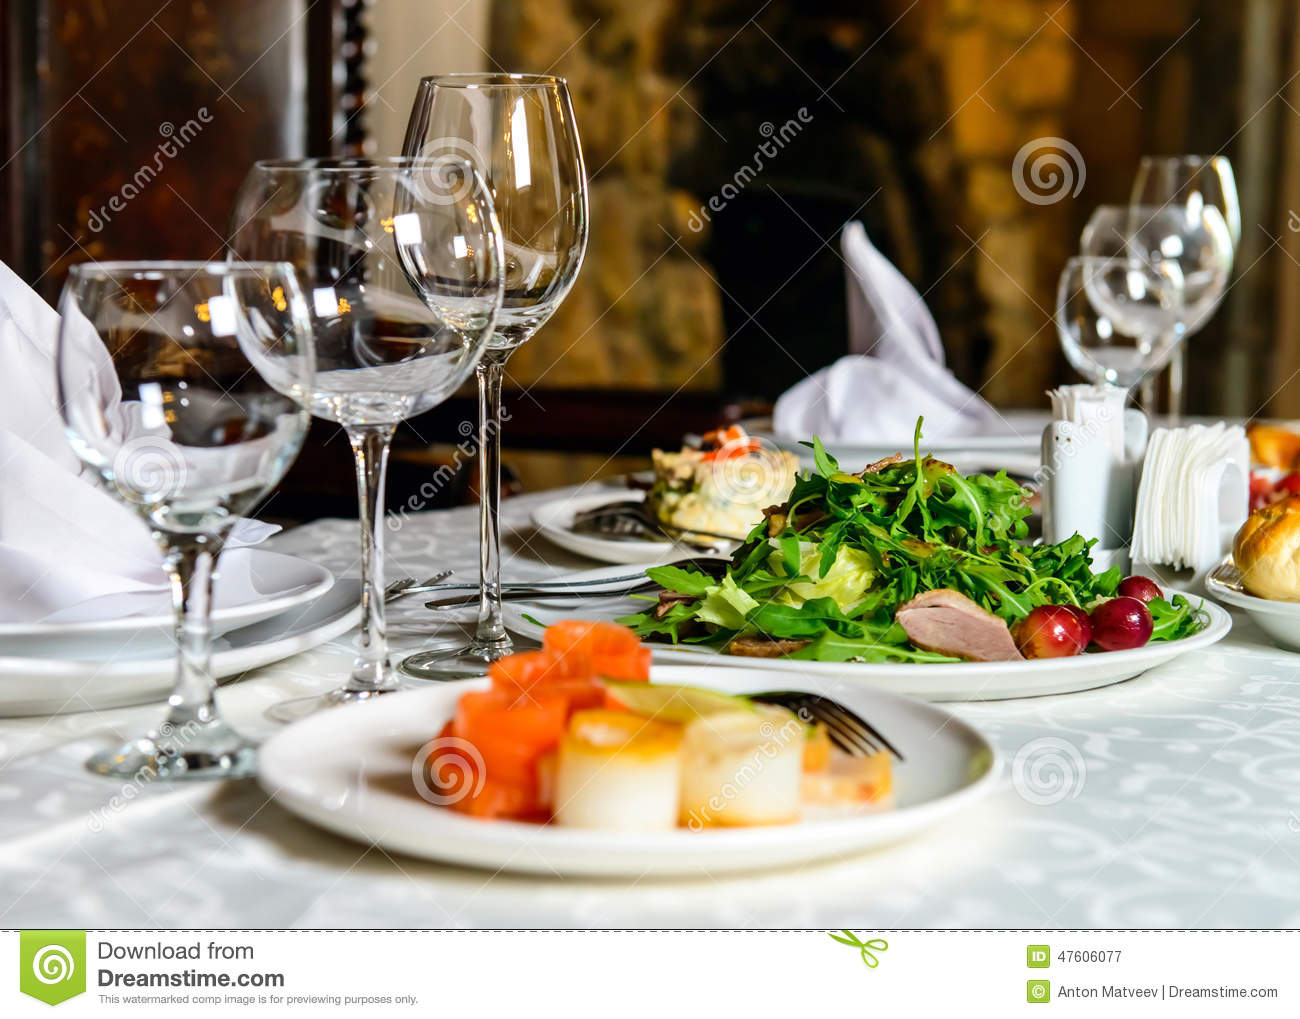 Served banquet restaurant table stock image image of for Restaurant table menu